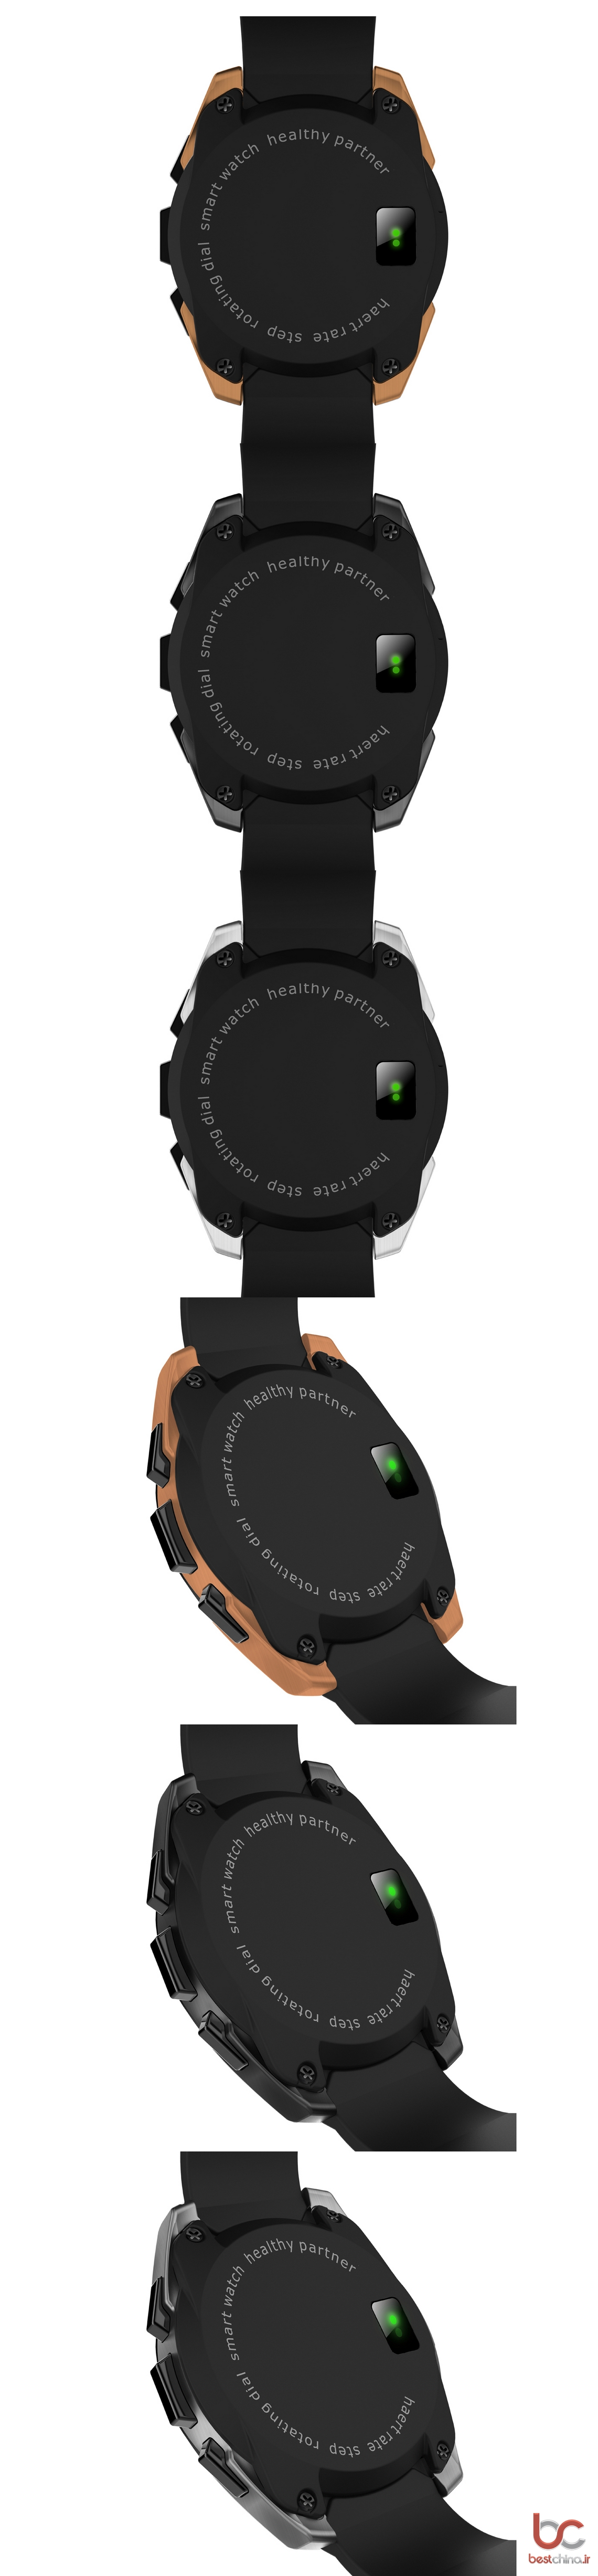 NO.1 G5 Smartwatch (9)